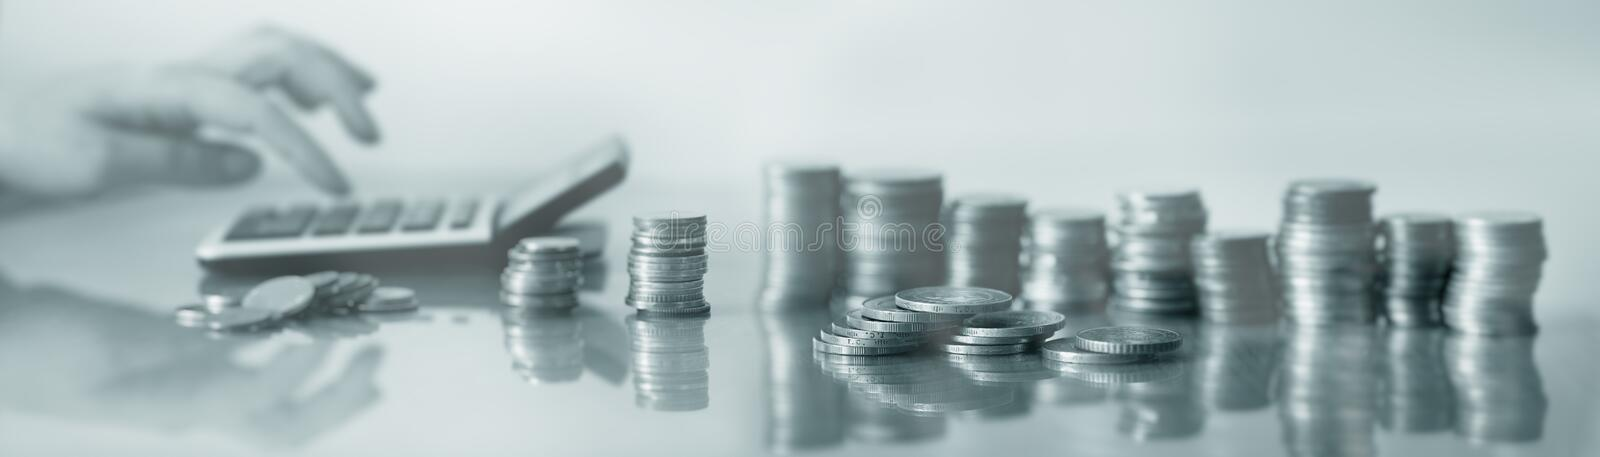 Businesswoman counts on a calculator background of coins. Business concept 5.0 royalty free stock photos